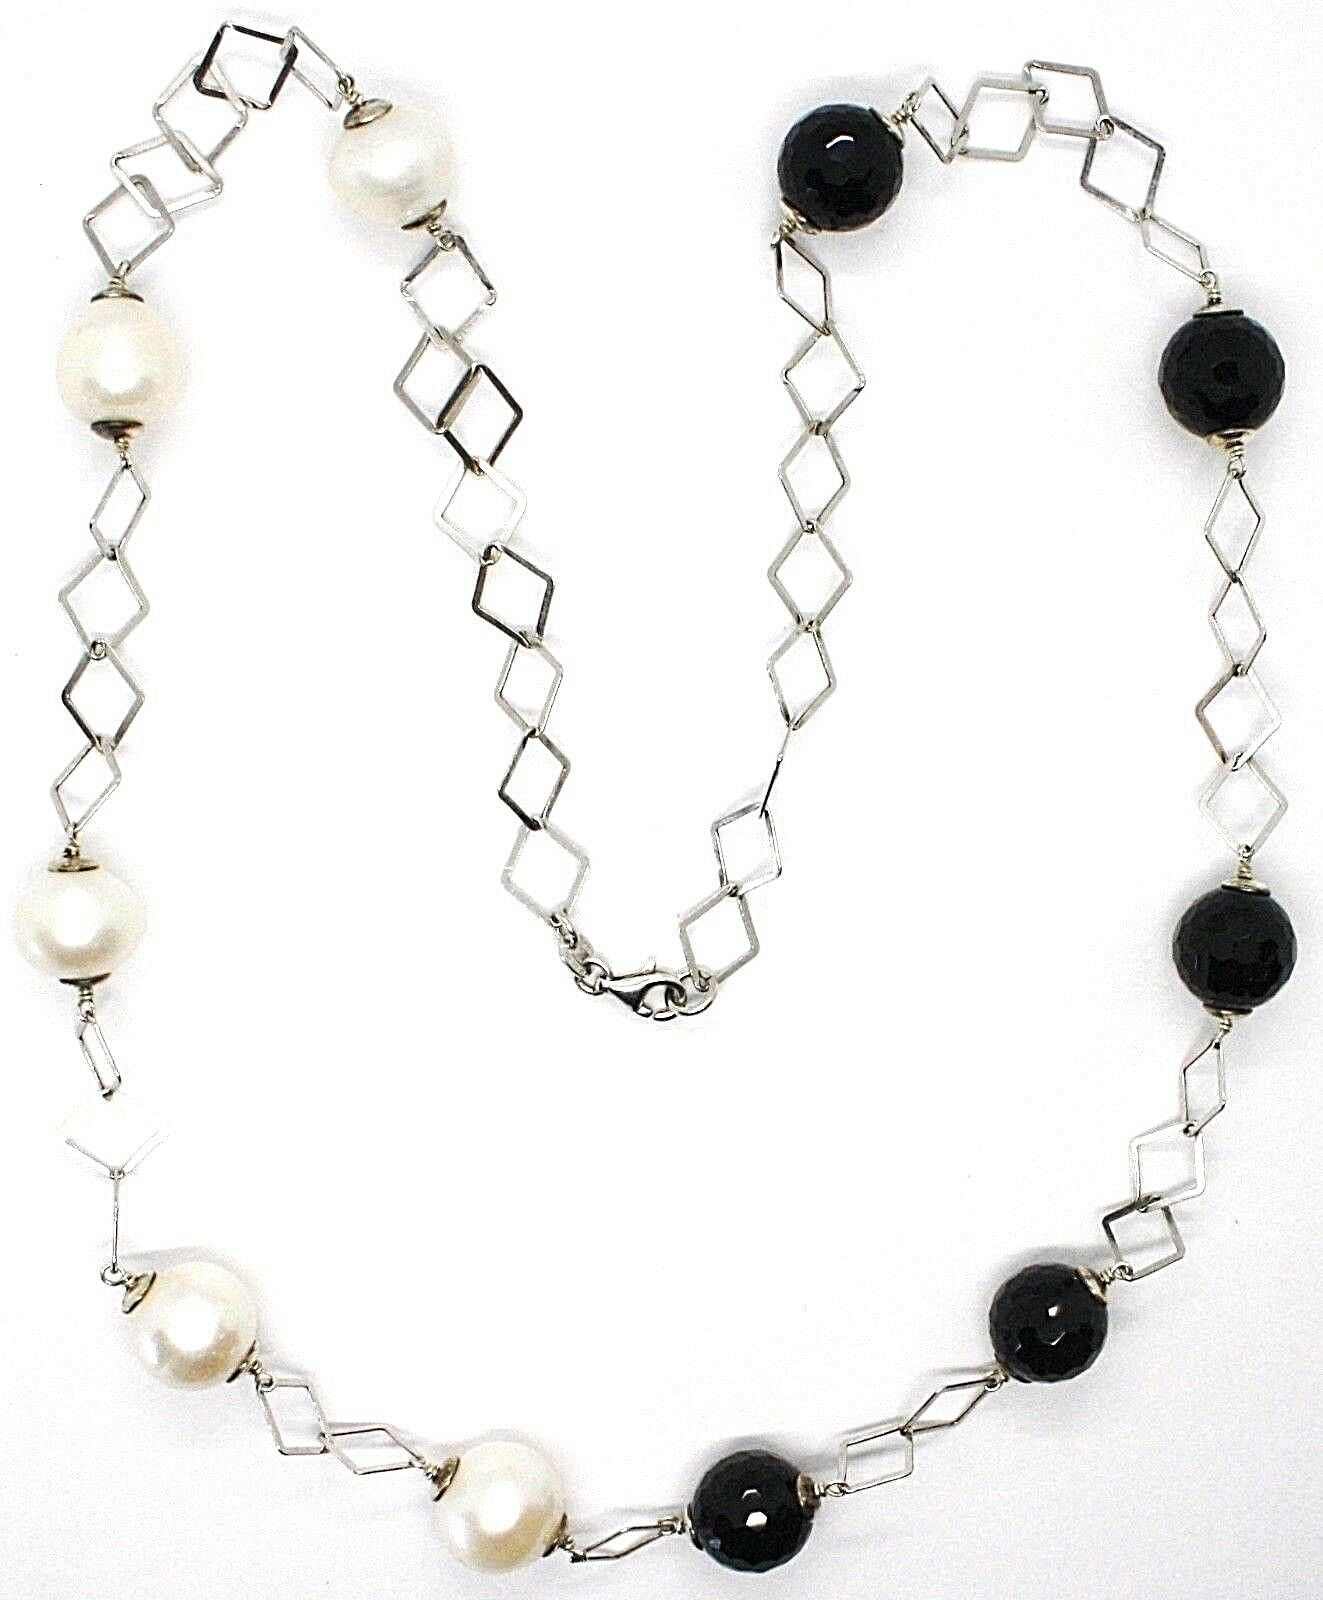 Necklace Silver 925, Onyx Black Faceted, Pearls, 62 cm, Chain Rhombuses image 2